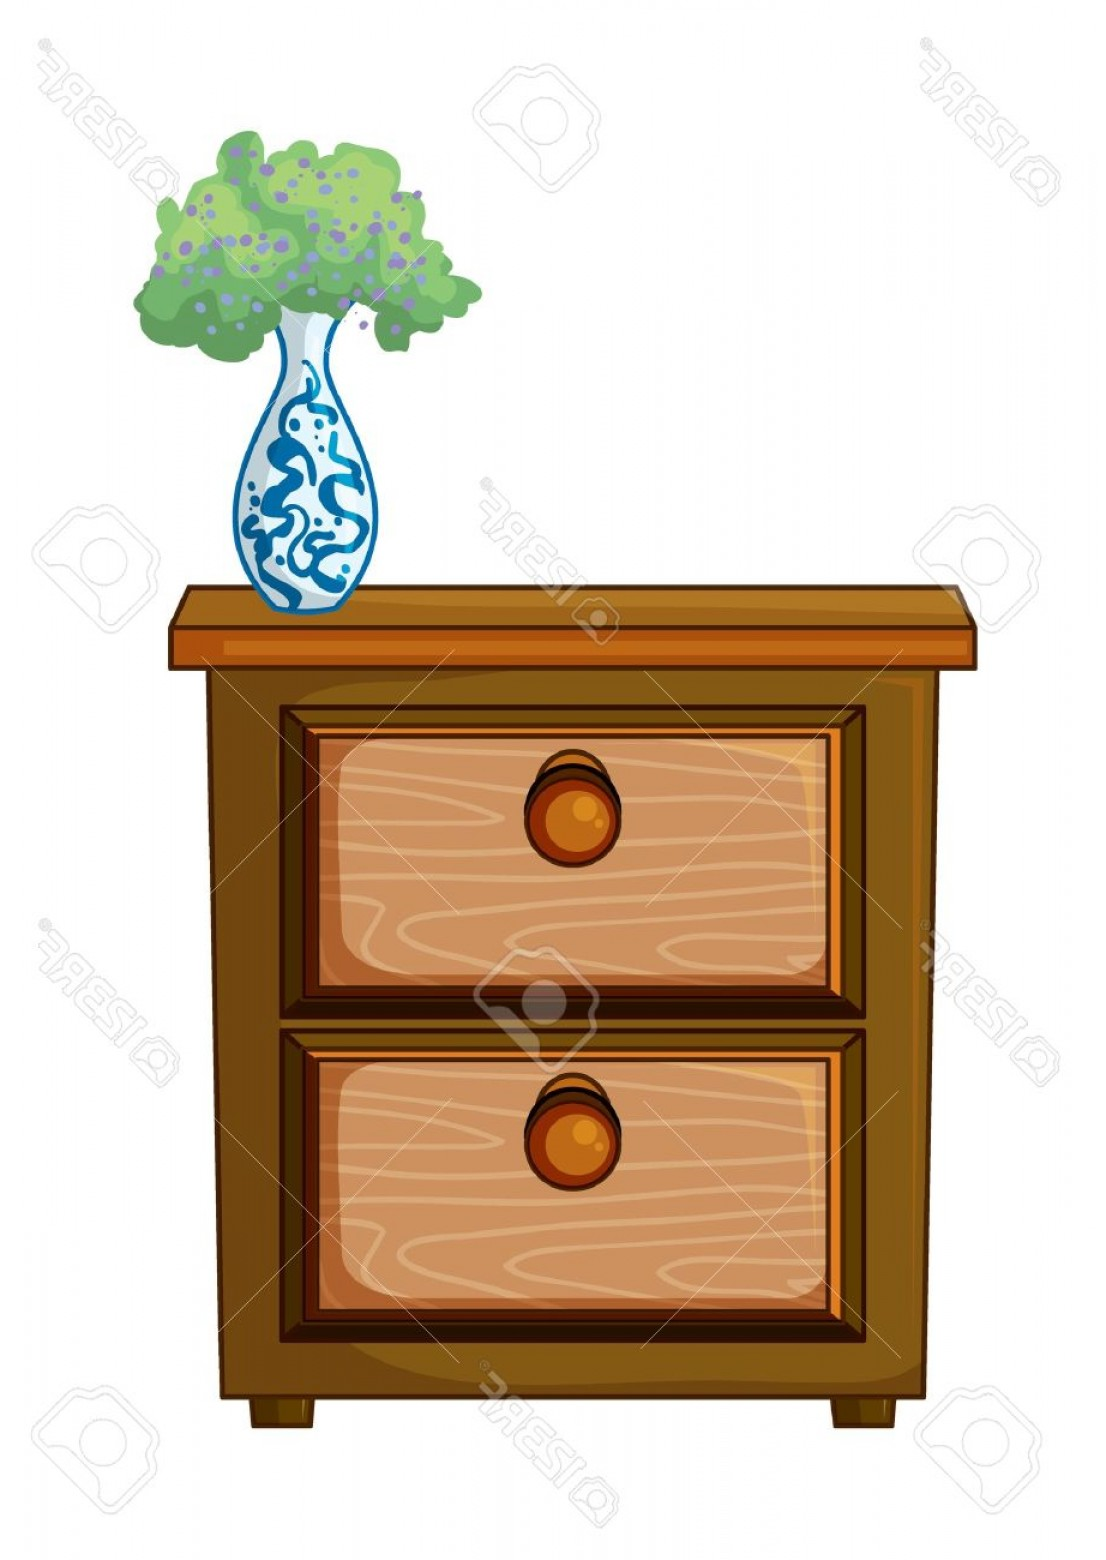 D Night Stanf Vector Graphic: Photoillustration Of A Table And A Flower Pot On A White Background